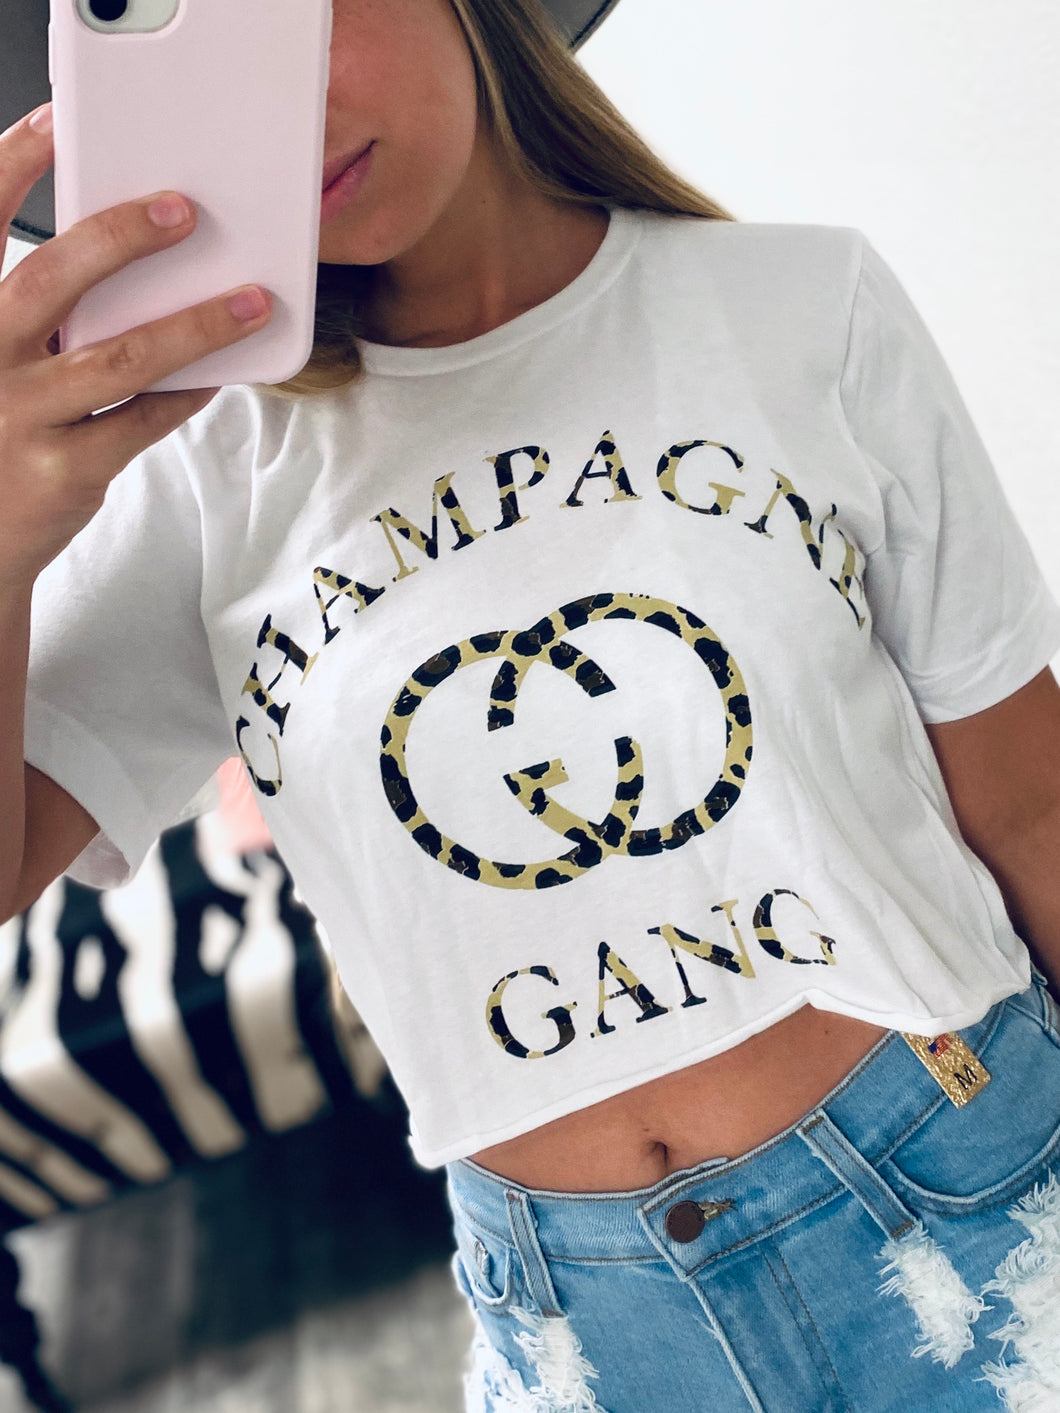 Champagne Gang Crop Tee-The Twisted Chandelier-babe tee, cheetah tee, crop tee-The Twisted Chandelier